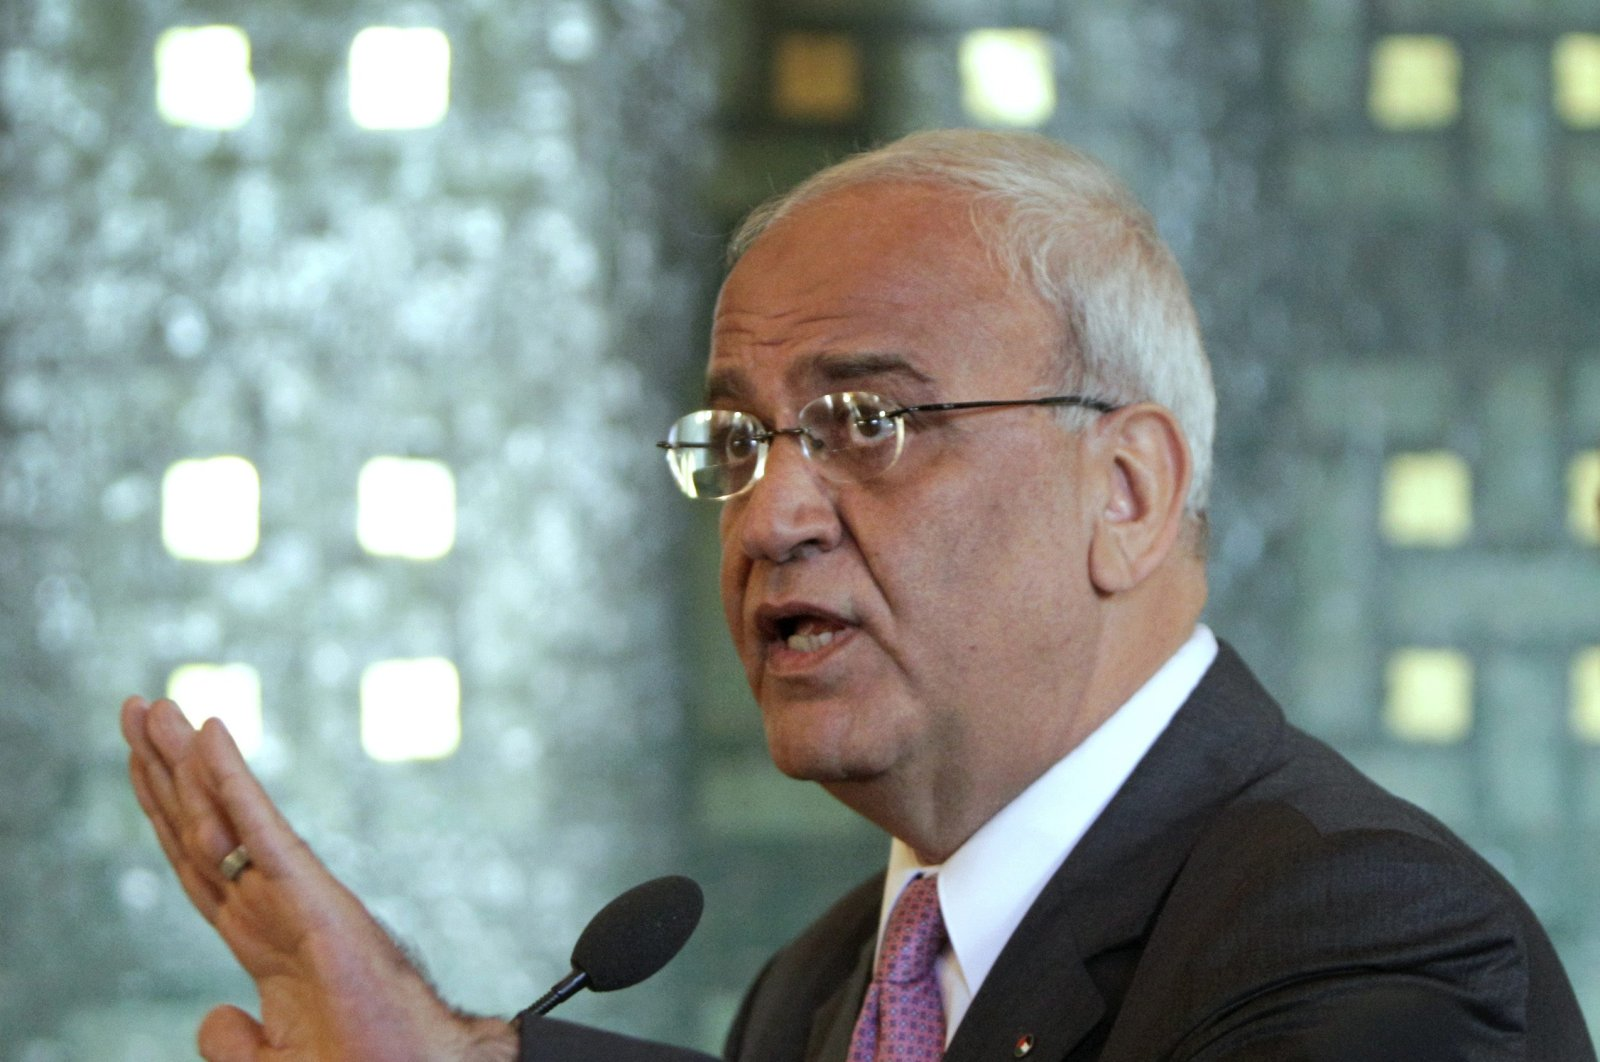 Chief Palestinian negotiator Saeb Erekat talks during a press conference with Arab League Secretary-General Nabil al-Arabi, not pictured, at the Arab League headquarters in Cairo, Egypt, Oct. 2, 2011. (AP Photo)